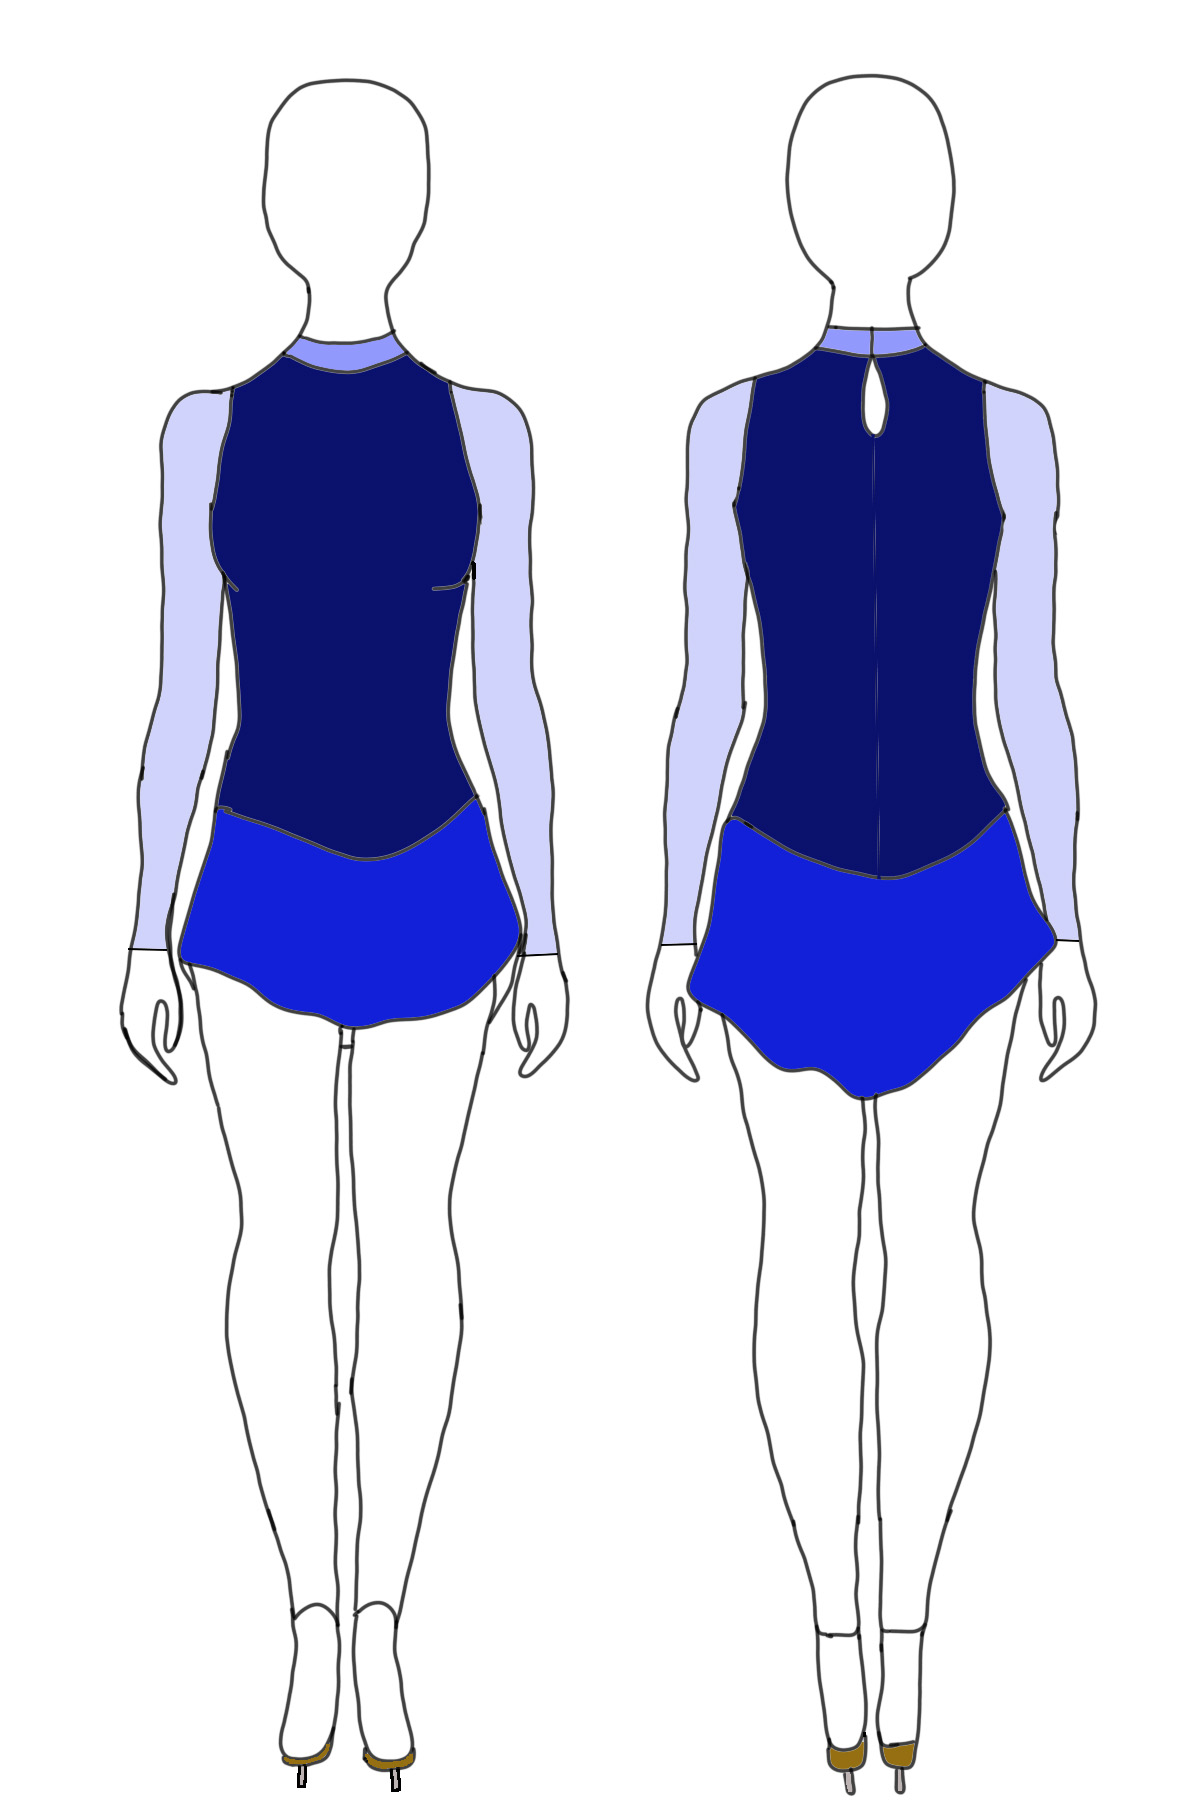 A sketch of the front and back views of a blue figure skating dress.  The bodice, skirt, sleeves, and collar are all in different shades of blue.